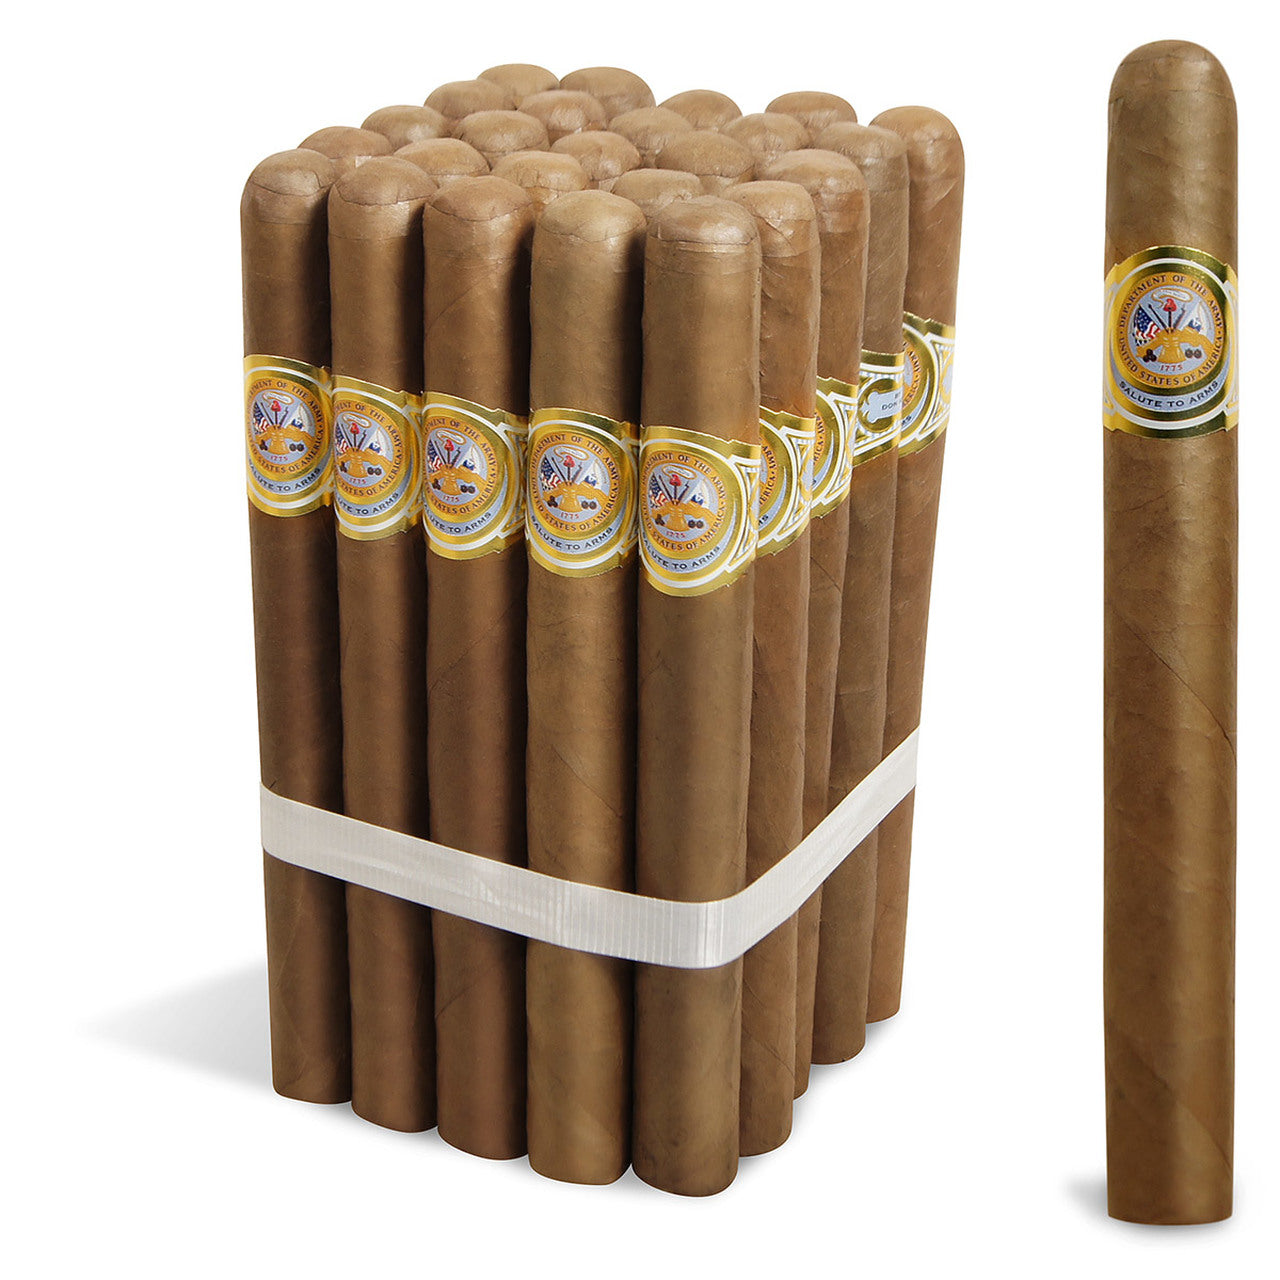 ARMY MILITARY (Box, Bundle and Pack Cigars)